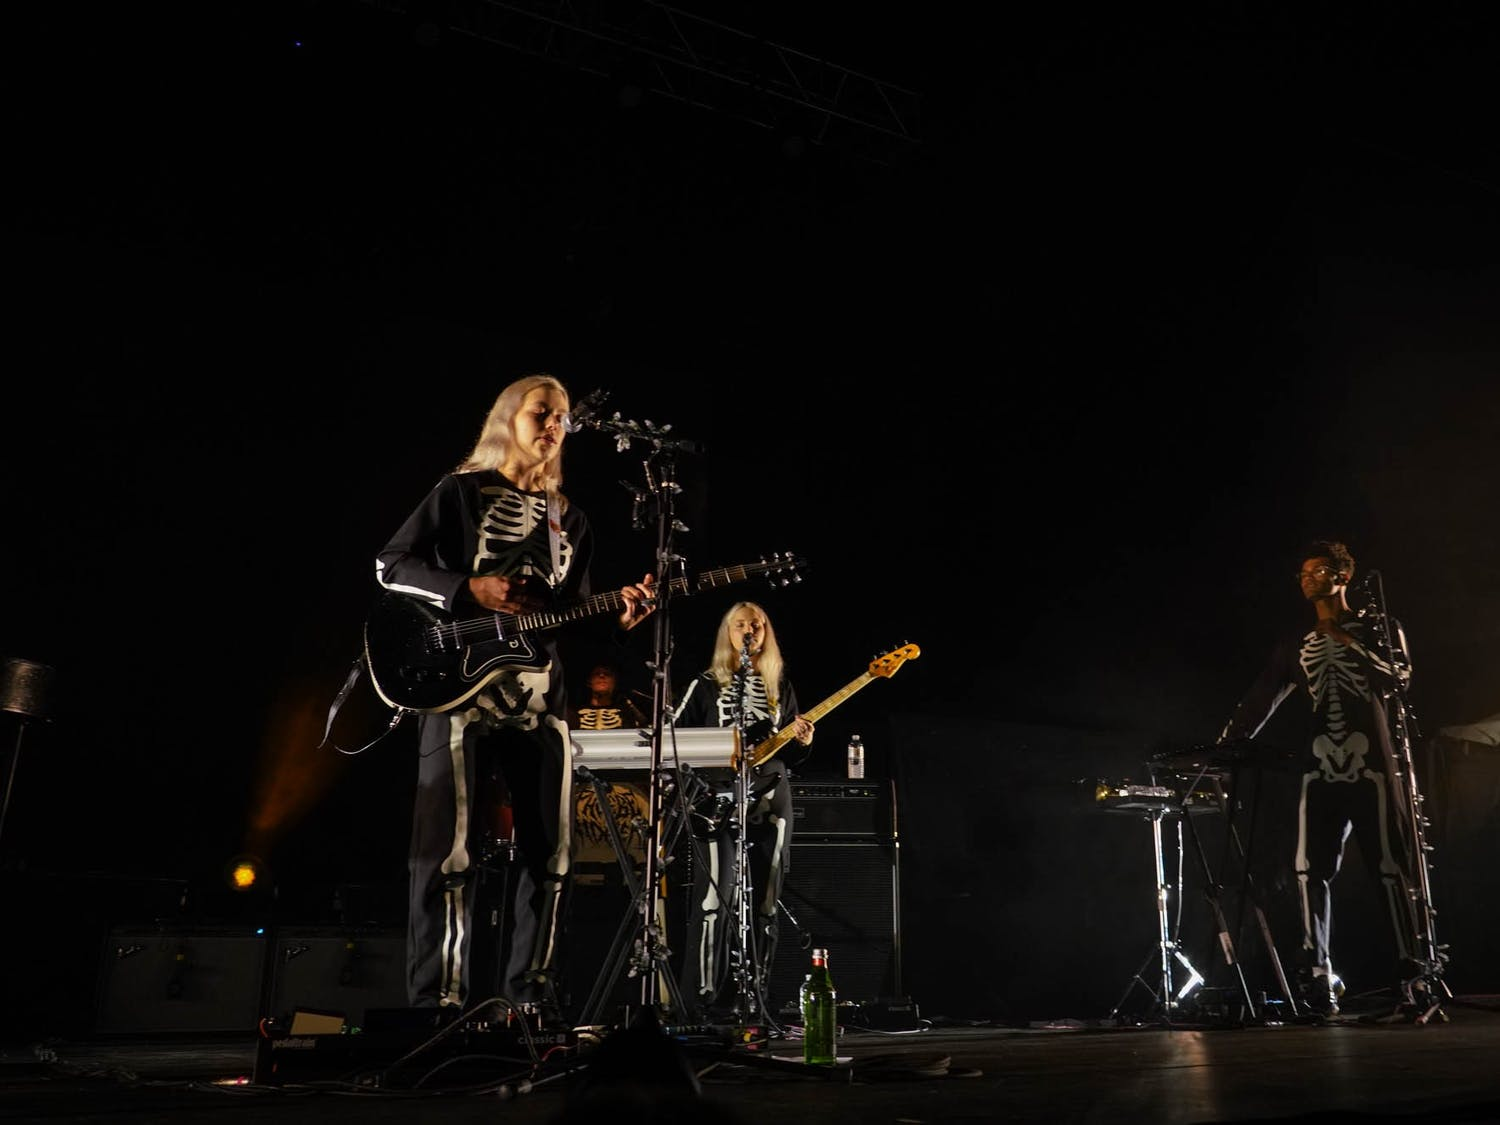 Phoebe Bridgers and her band perform a show at the Red Hat Ampitheater in Raleigh, NC, on Sept. 21, 2021.